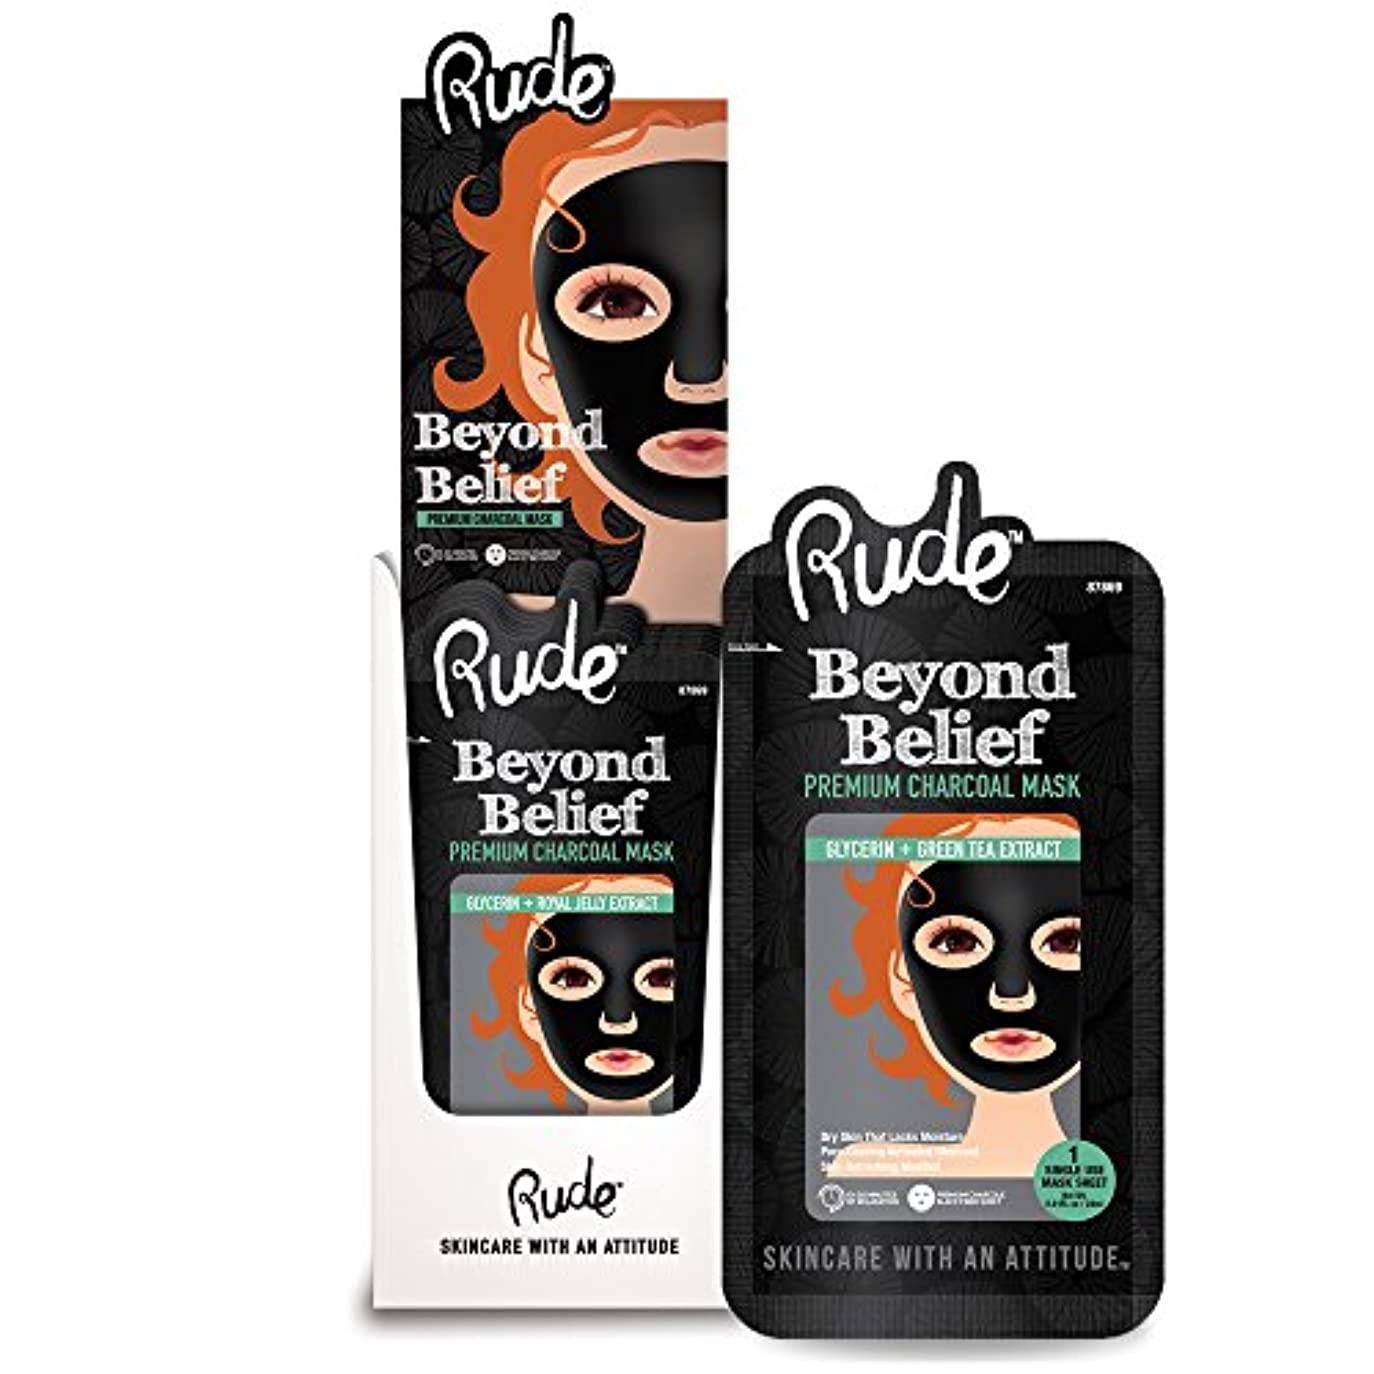 会議牧草地カートンRUDE Beyond Belief Purifying Charcoal Mask Display Set, 36 Pieces (並行輸入品)